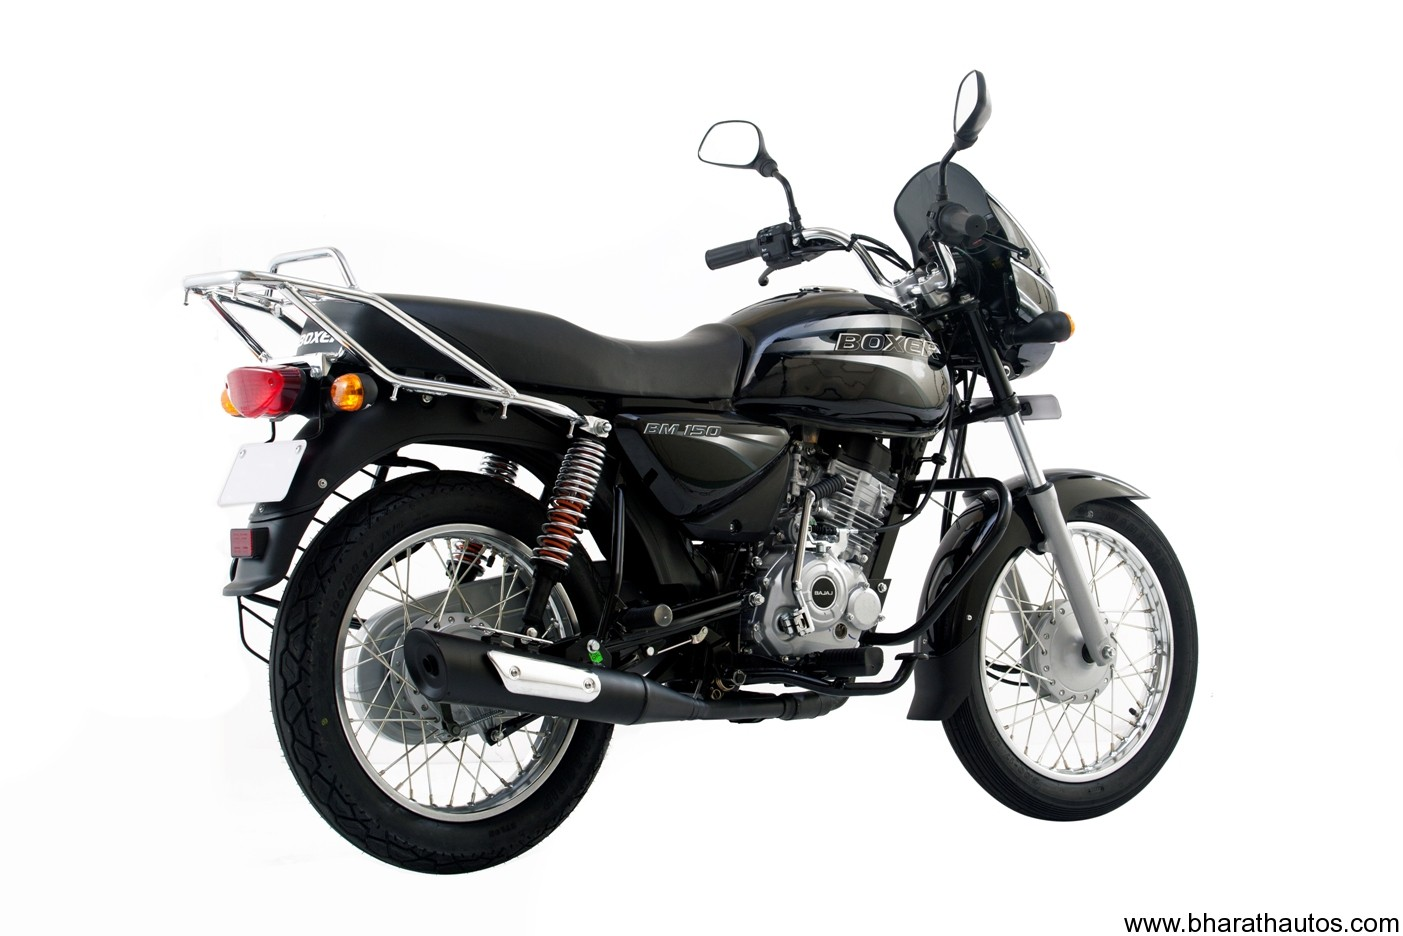 Bajaj ct 100 price in bangalore dating 7